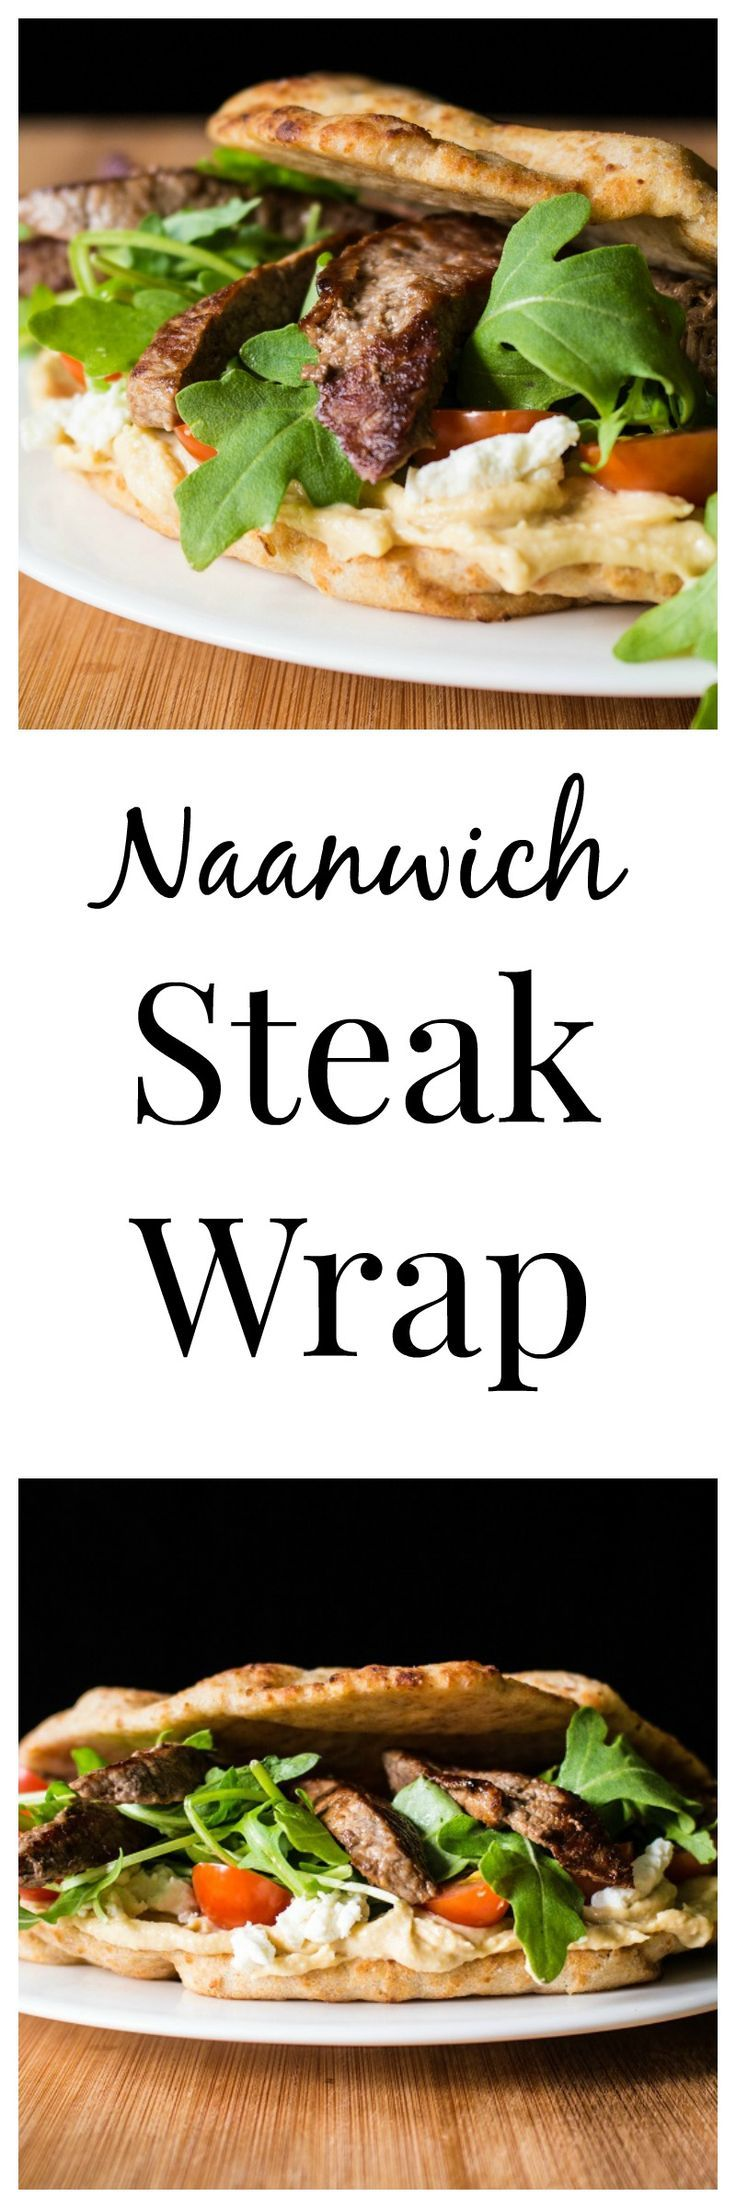 This delicious steak wrap sandwich made with naan bread is quick, easy, and so full of fresh flavor.  Try it for lunch or dinner today!  Sponsored by Beef, It's What's for Dinner.